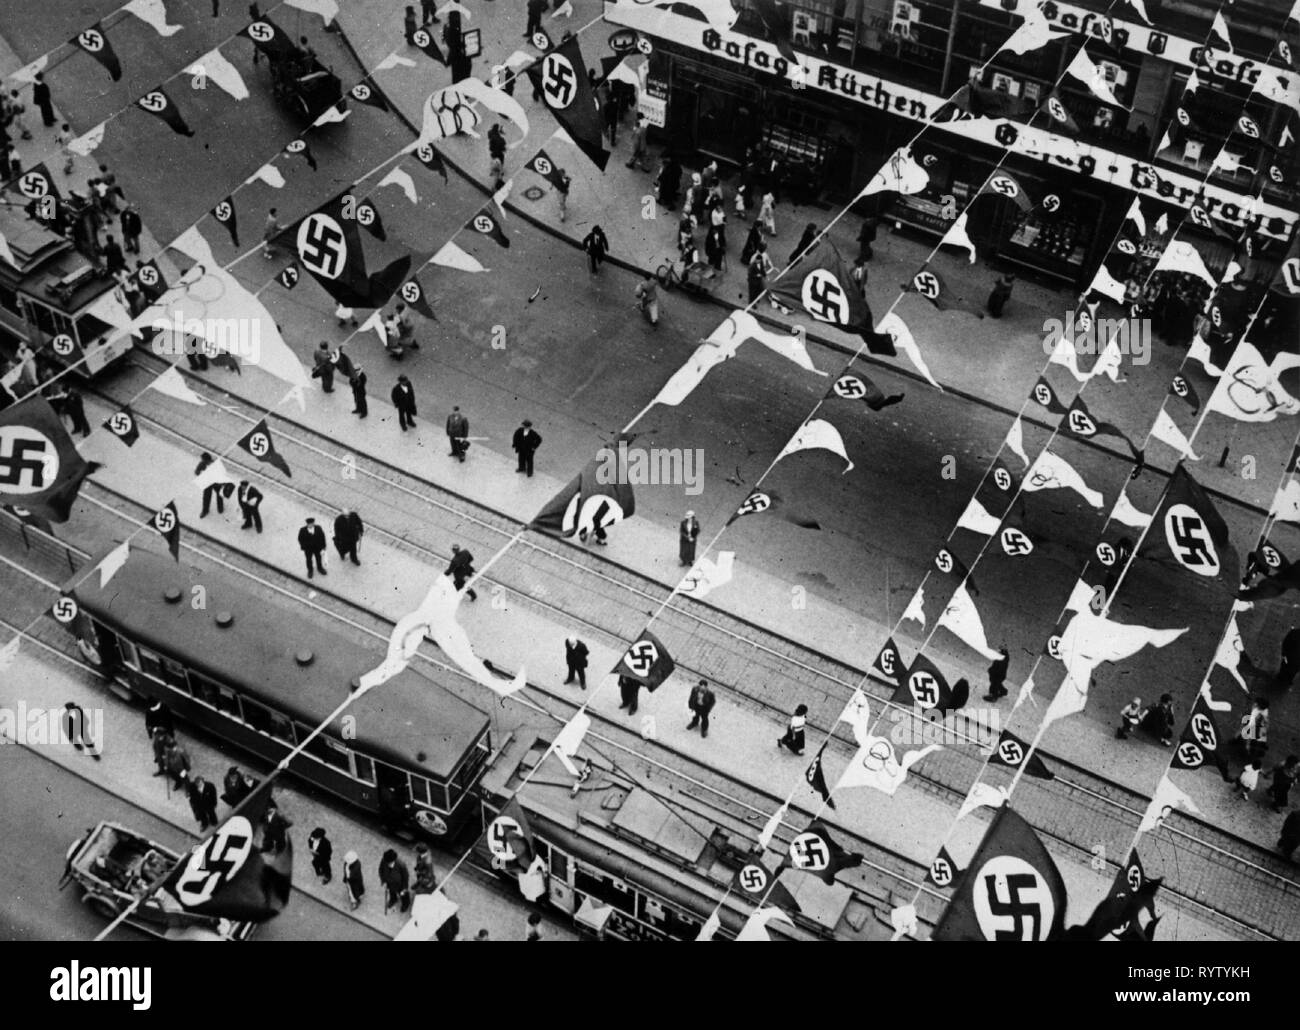 Sport, Giochi Olimpici, Berlin 1. - 16.8.1936, apertura con bandiere decorate street, vista da sopra, Additional-Rights-Clearance-Info-Not-Available Immagini Stock